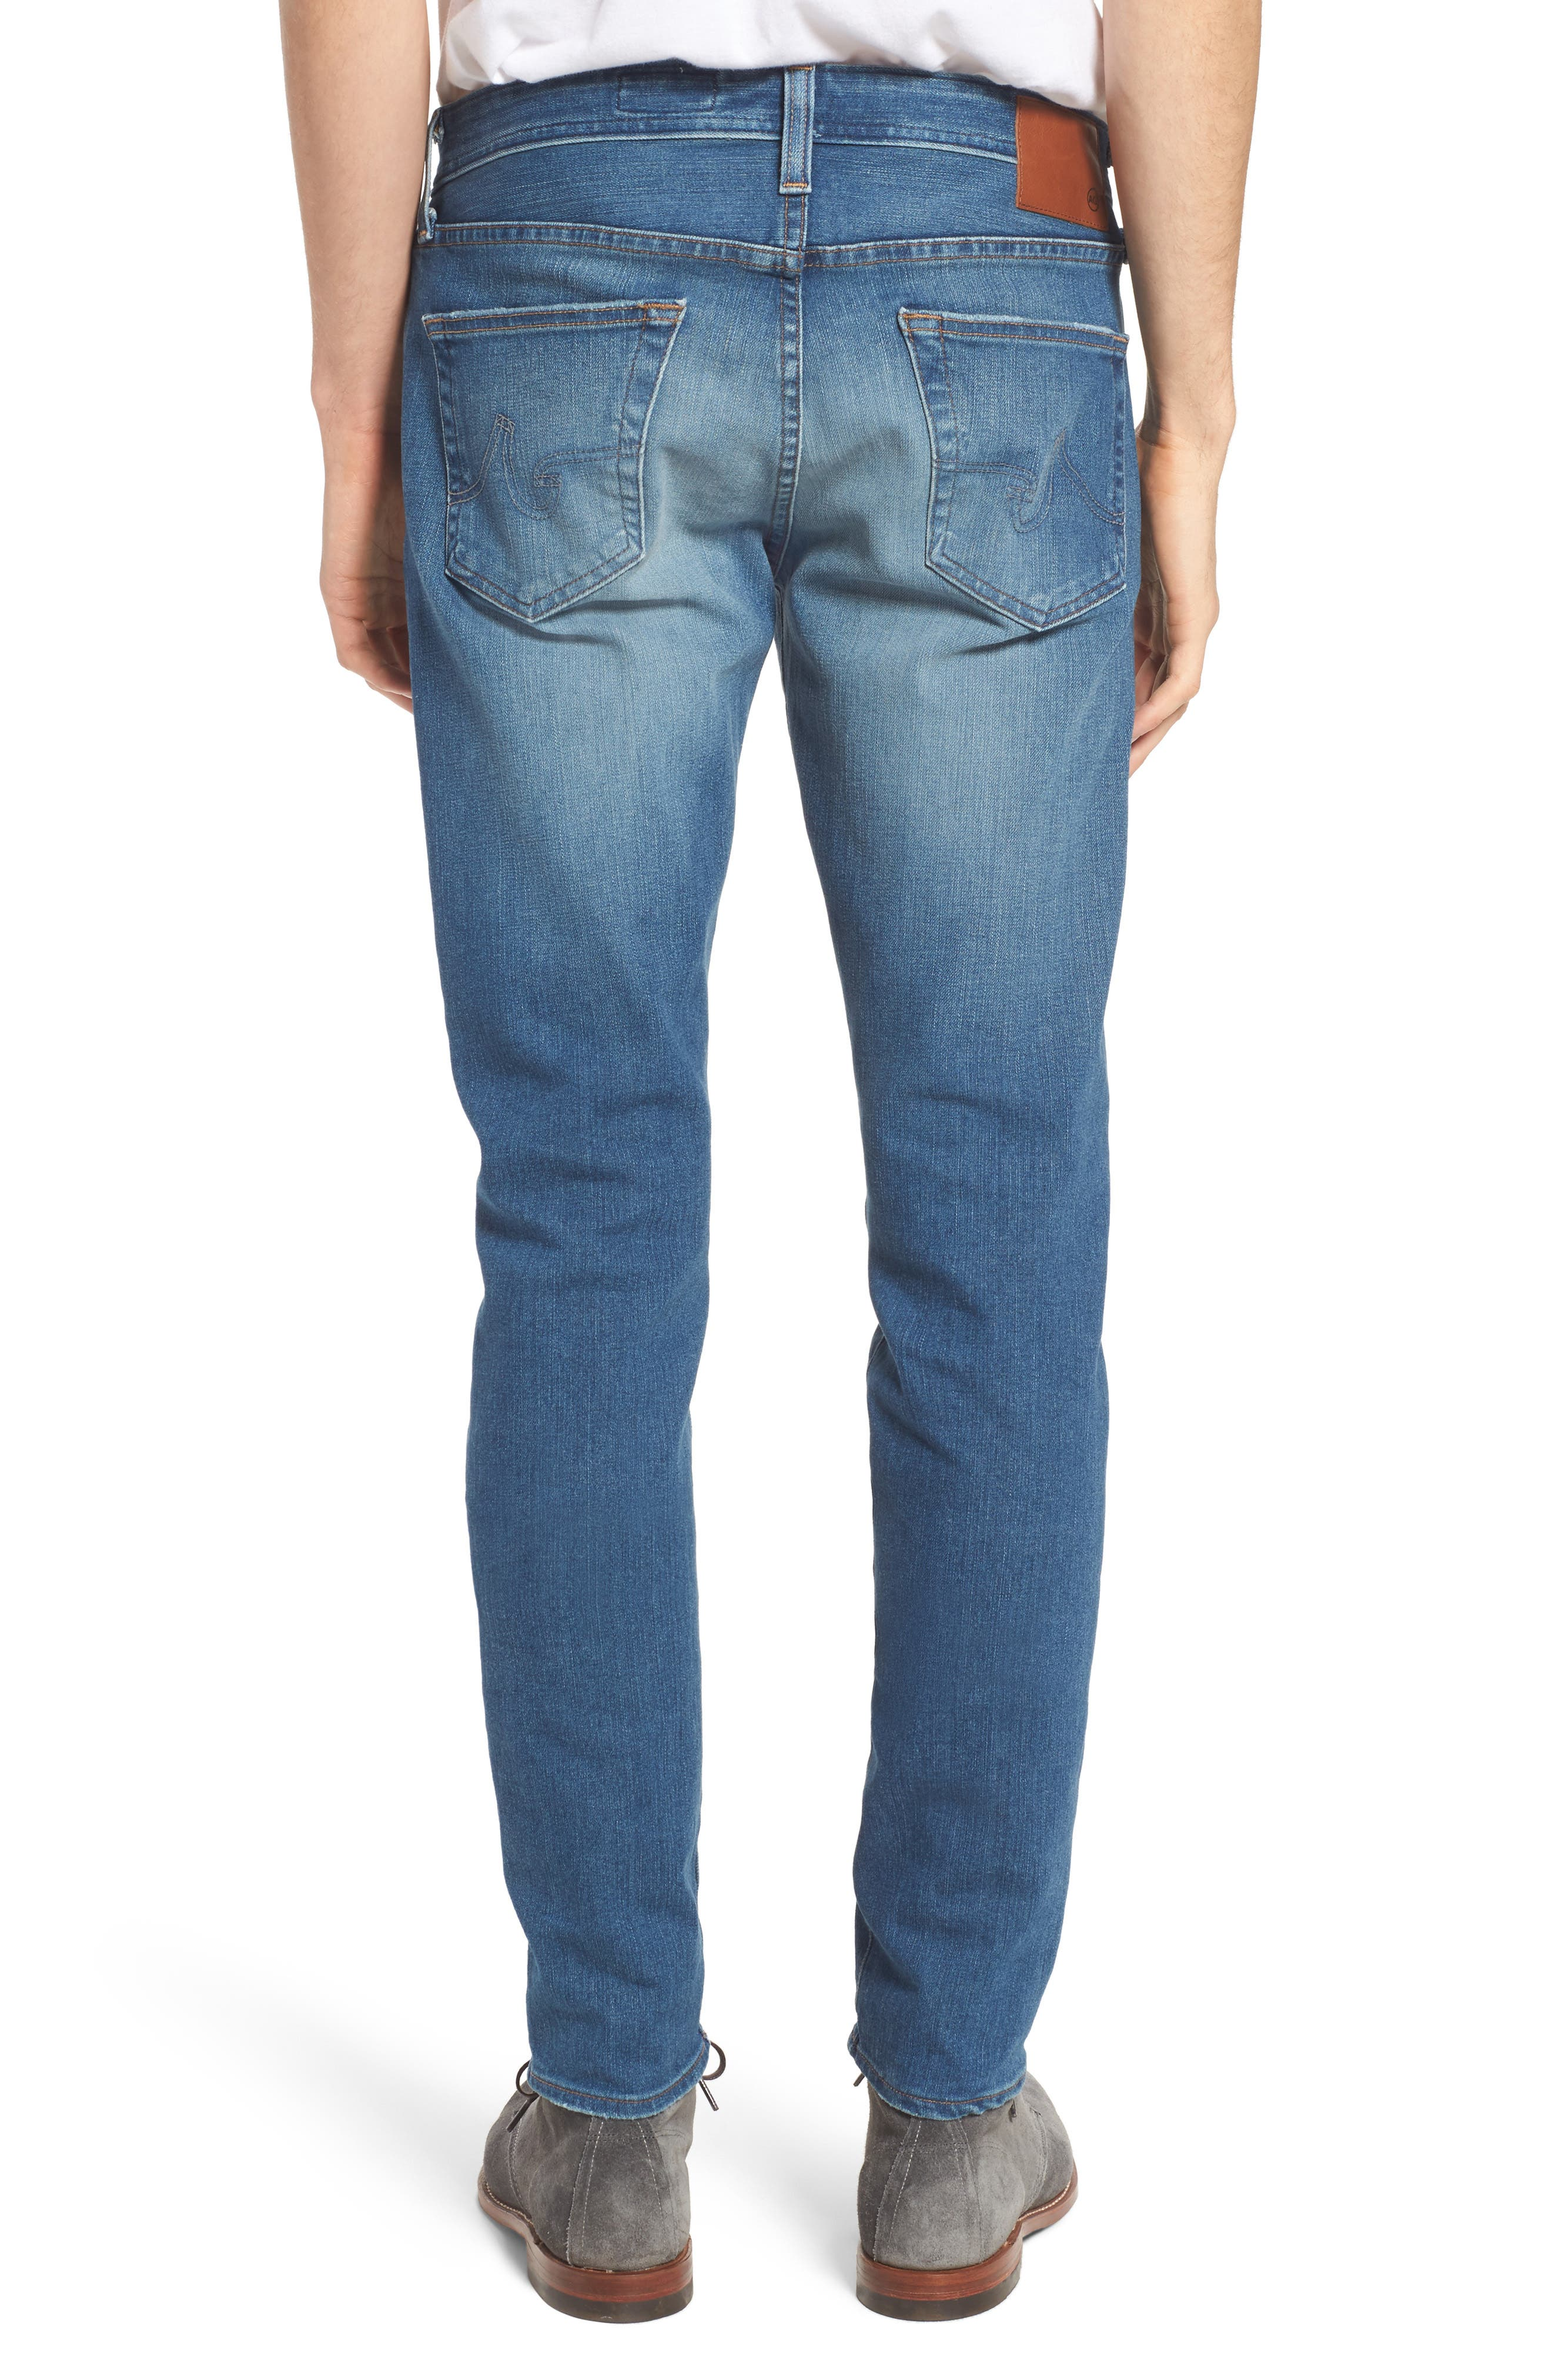 Dylan Slim Skinny Fit Jeans,                             Alternate thumbnail 2, color,                             Audition